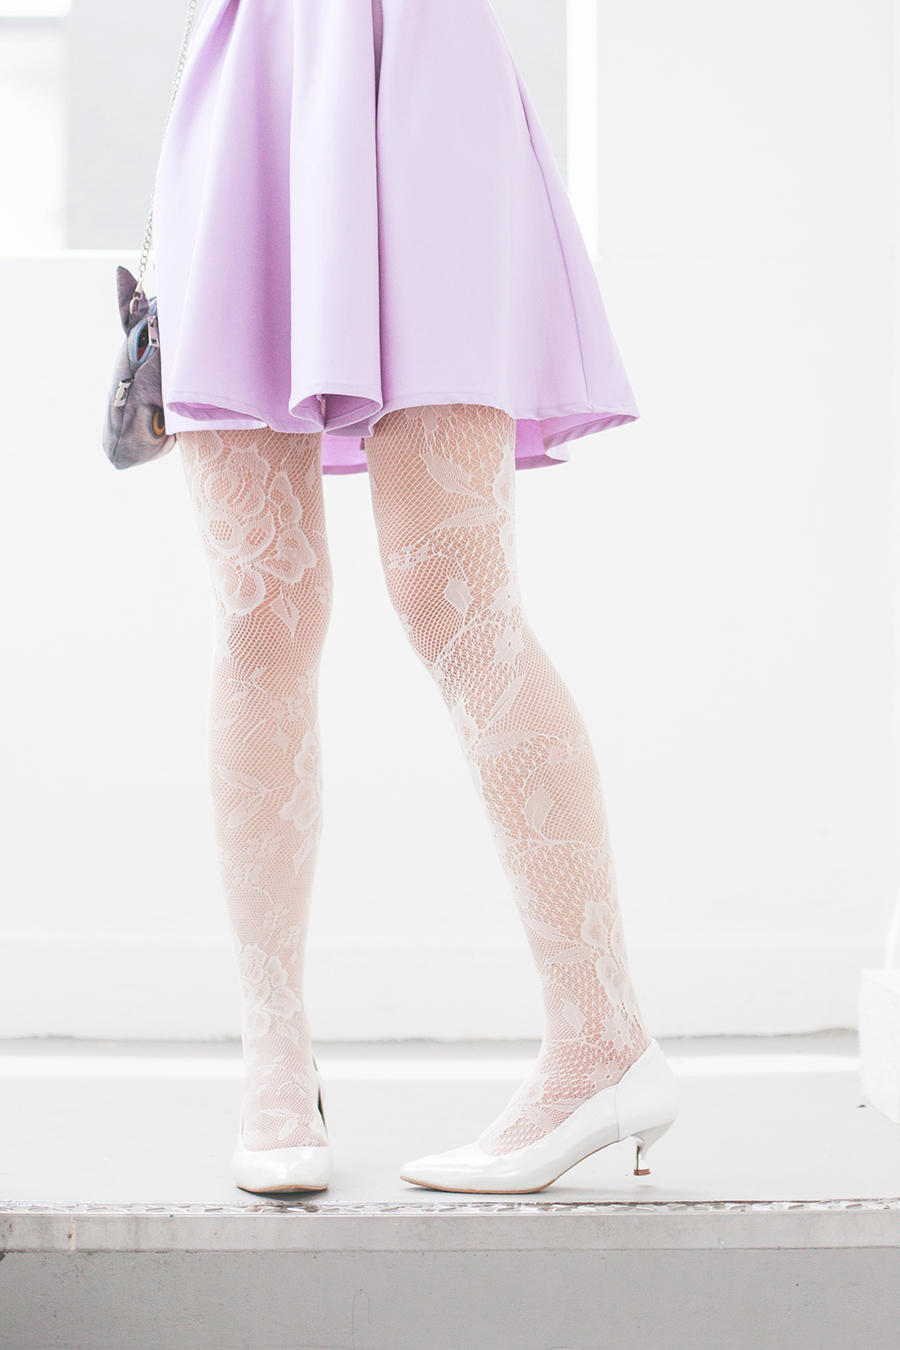 Wedding bridesmaid outfit: The Velvet Dolls Arianna Off-Shoulder Dress in Lilac, Miwo grumpy cat face bag, Forever 21 white lace tights, Vincci white pumps